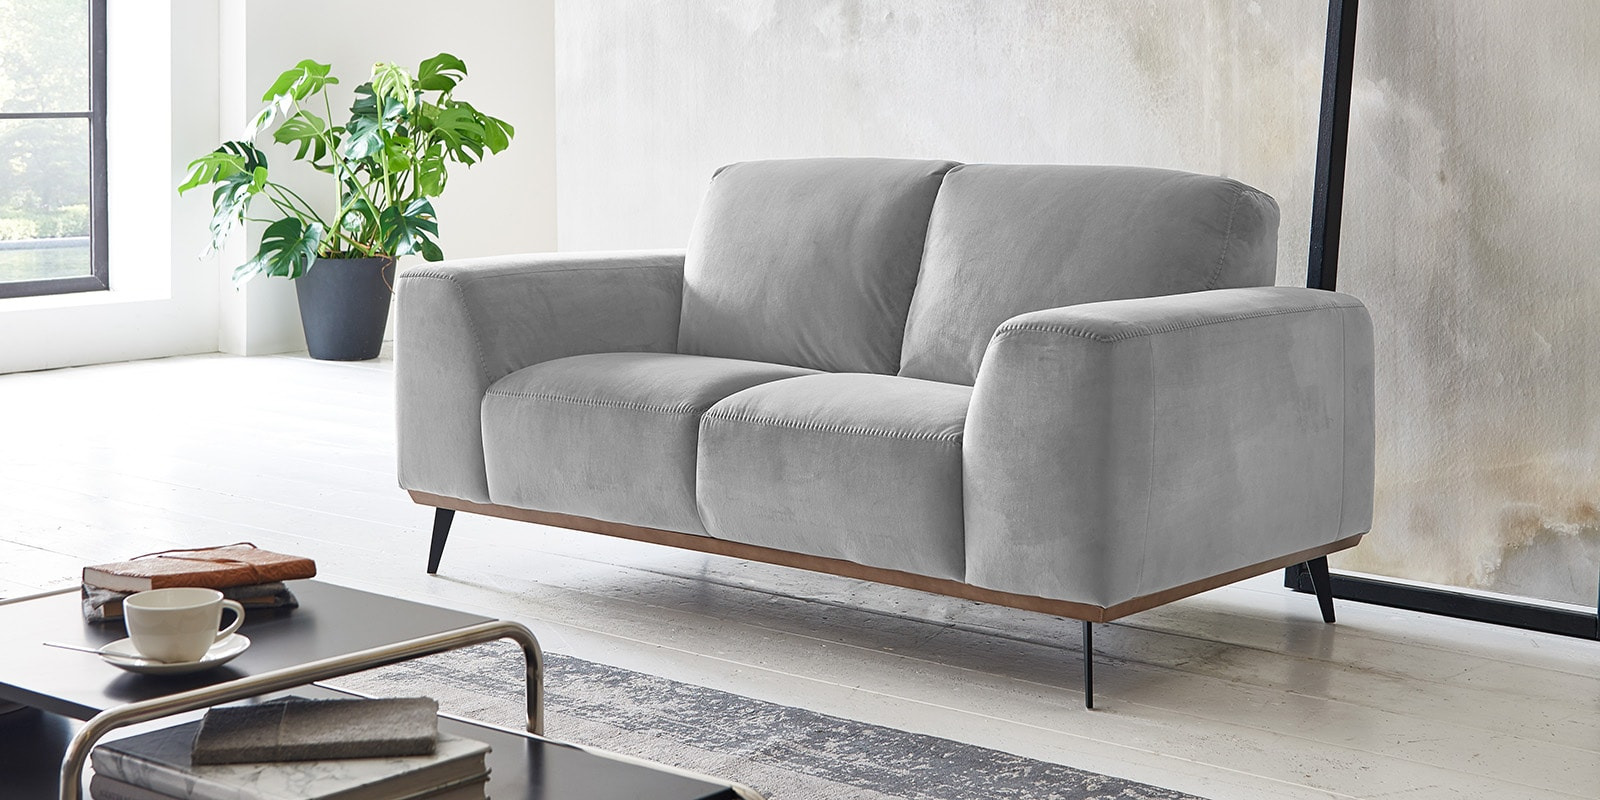 2 Sitzer Couch Samt Barcelona Comfort2home